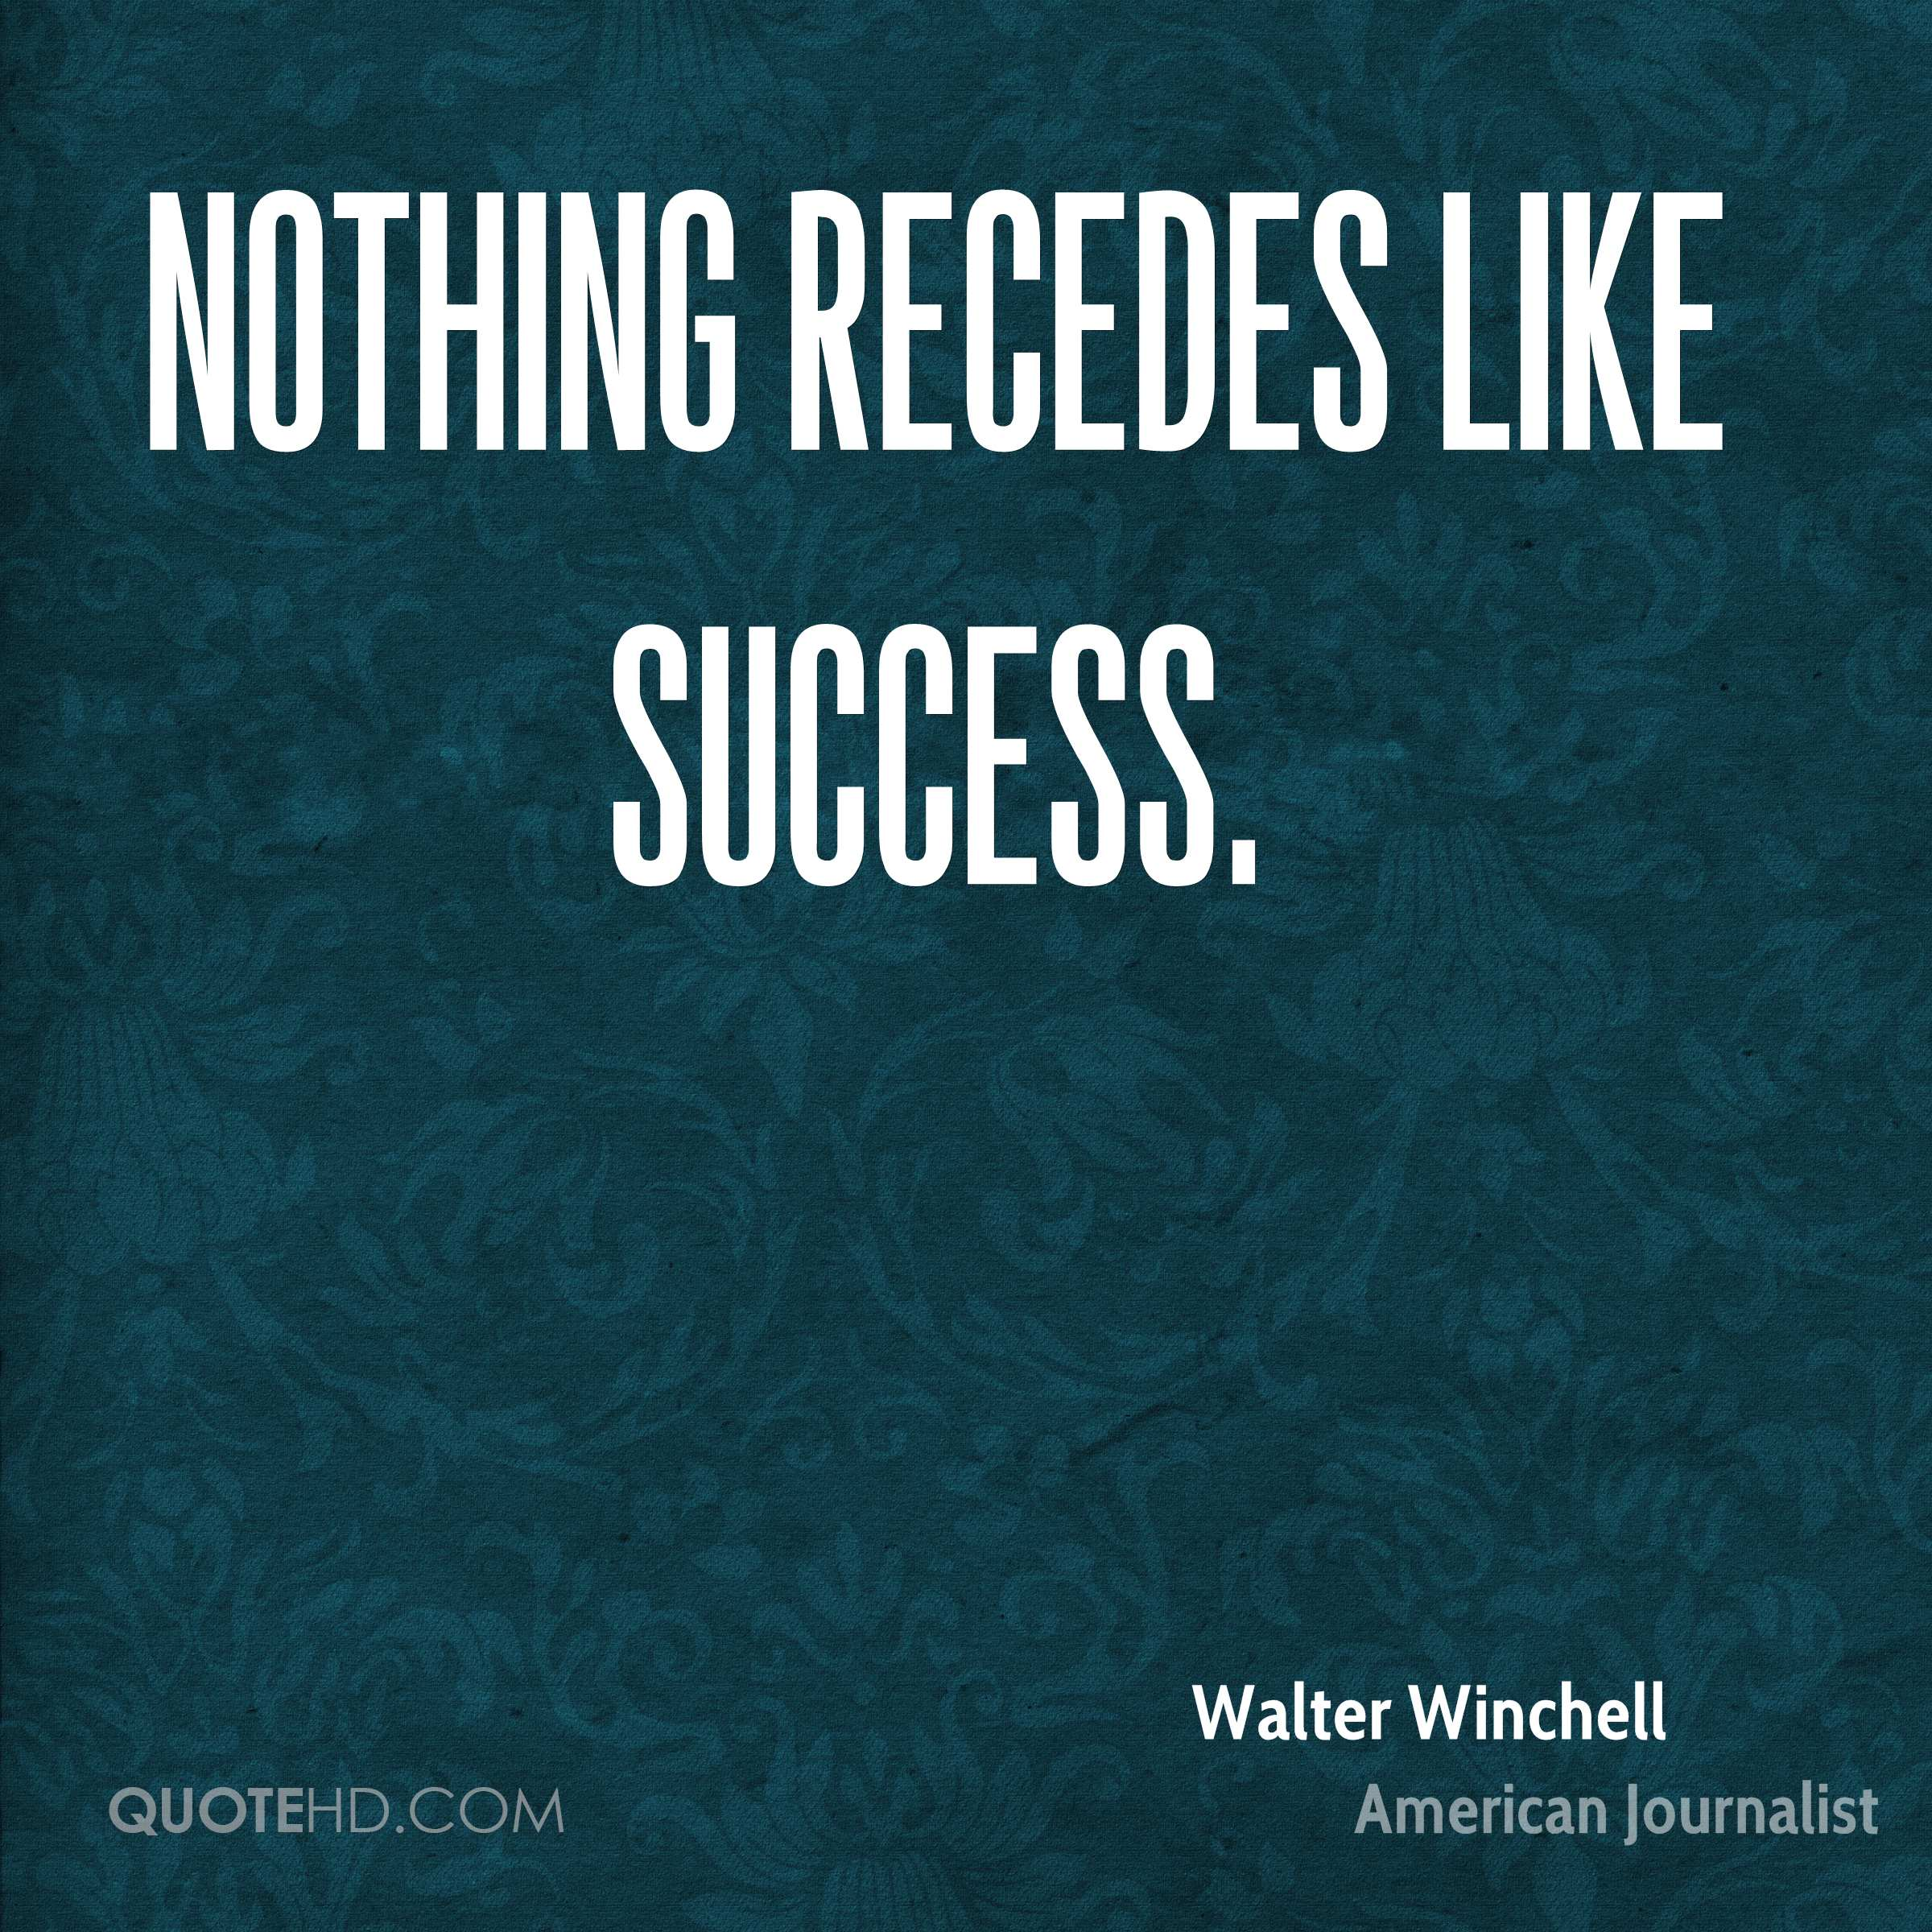 Nothing recedes like success.